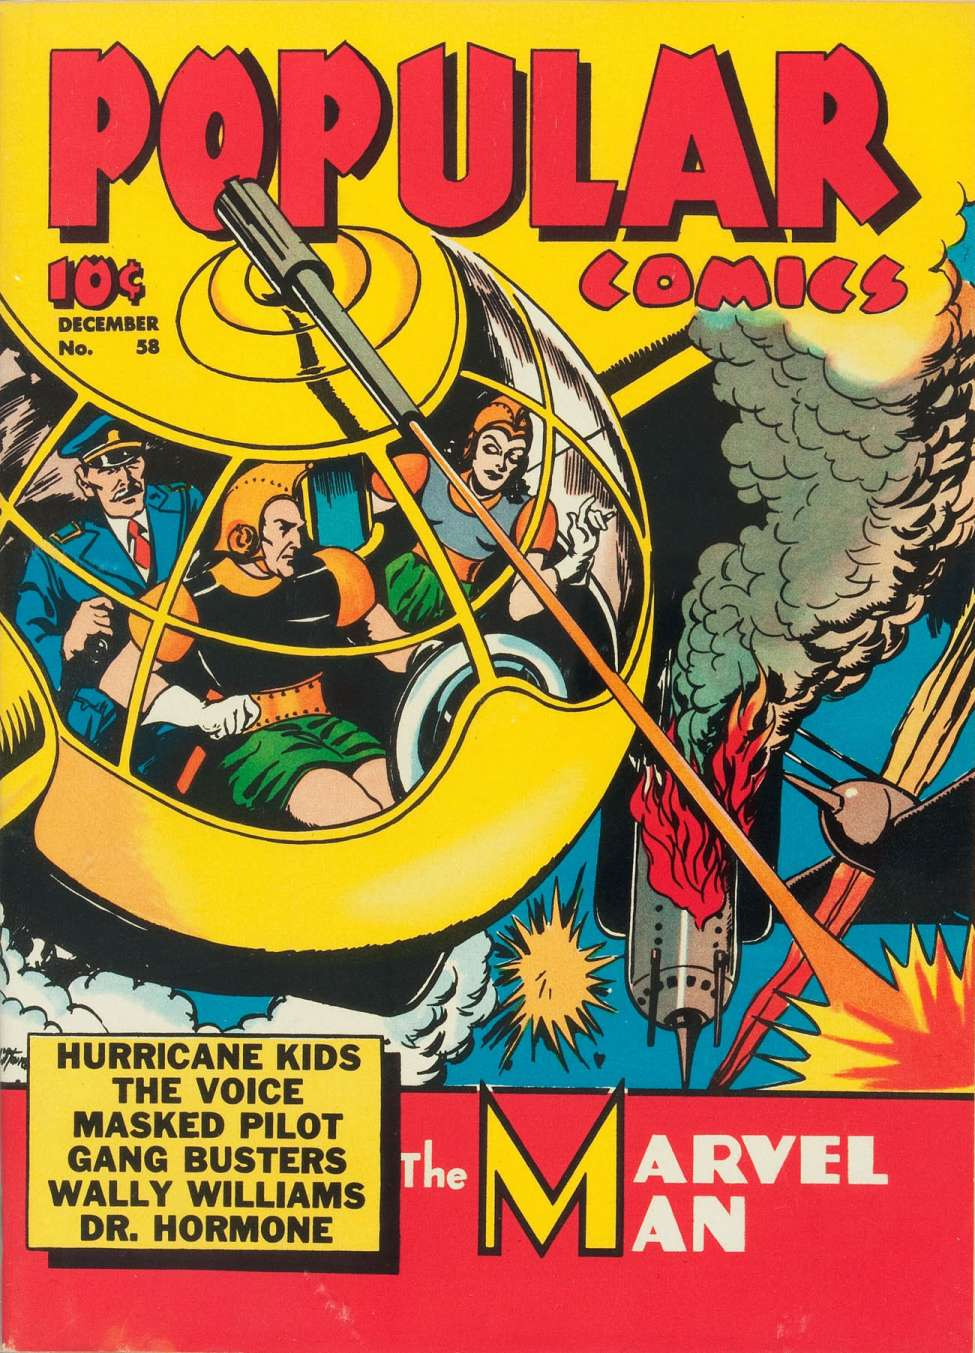 Comic Book Cover For Popular Comics #58